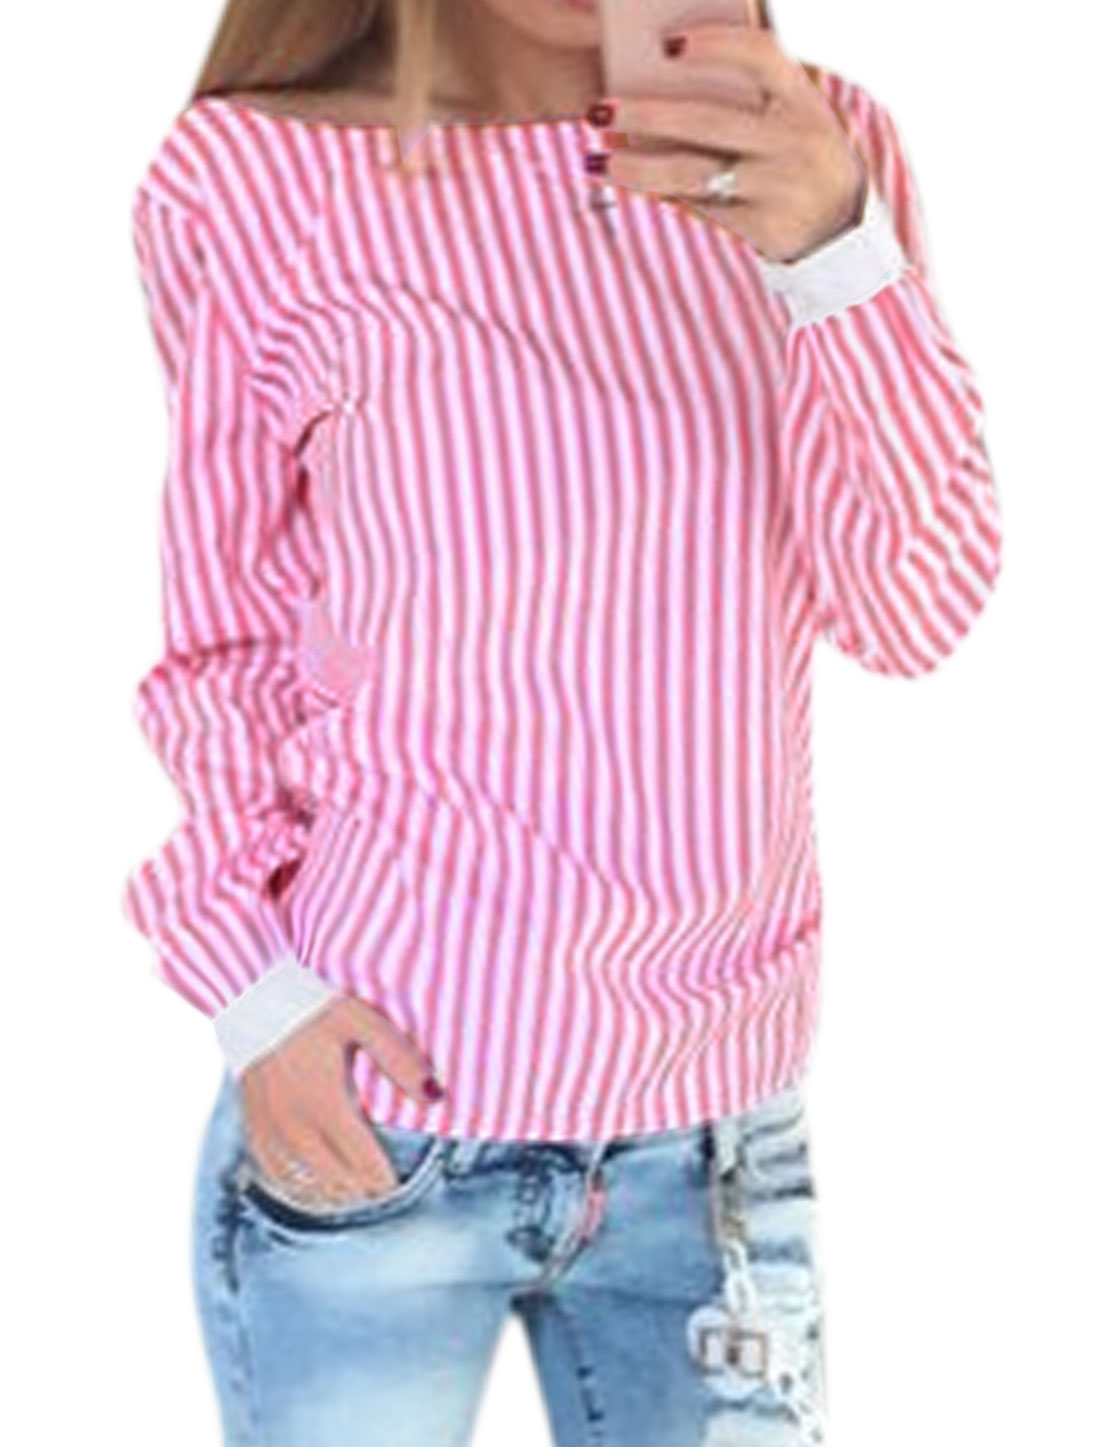 Women Open Back Long Sleeves Stripes Self Tie Top Pink M